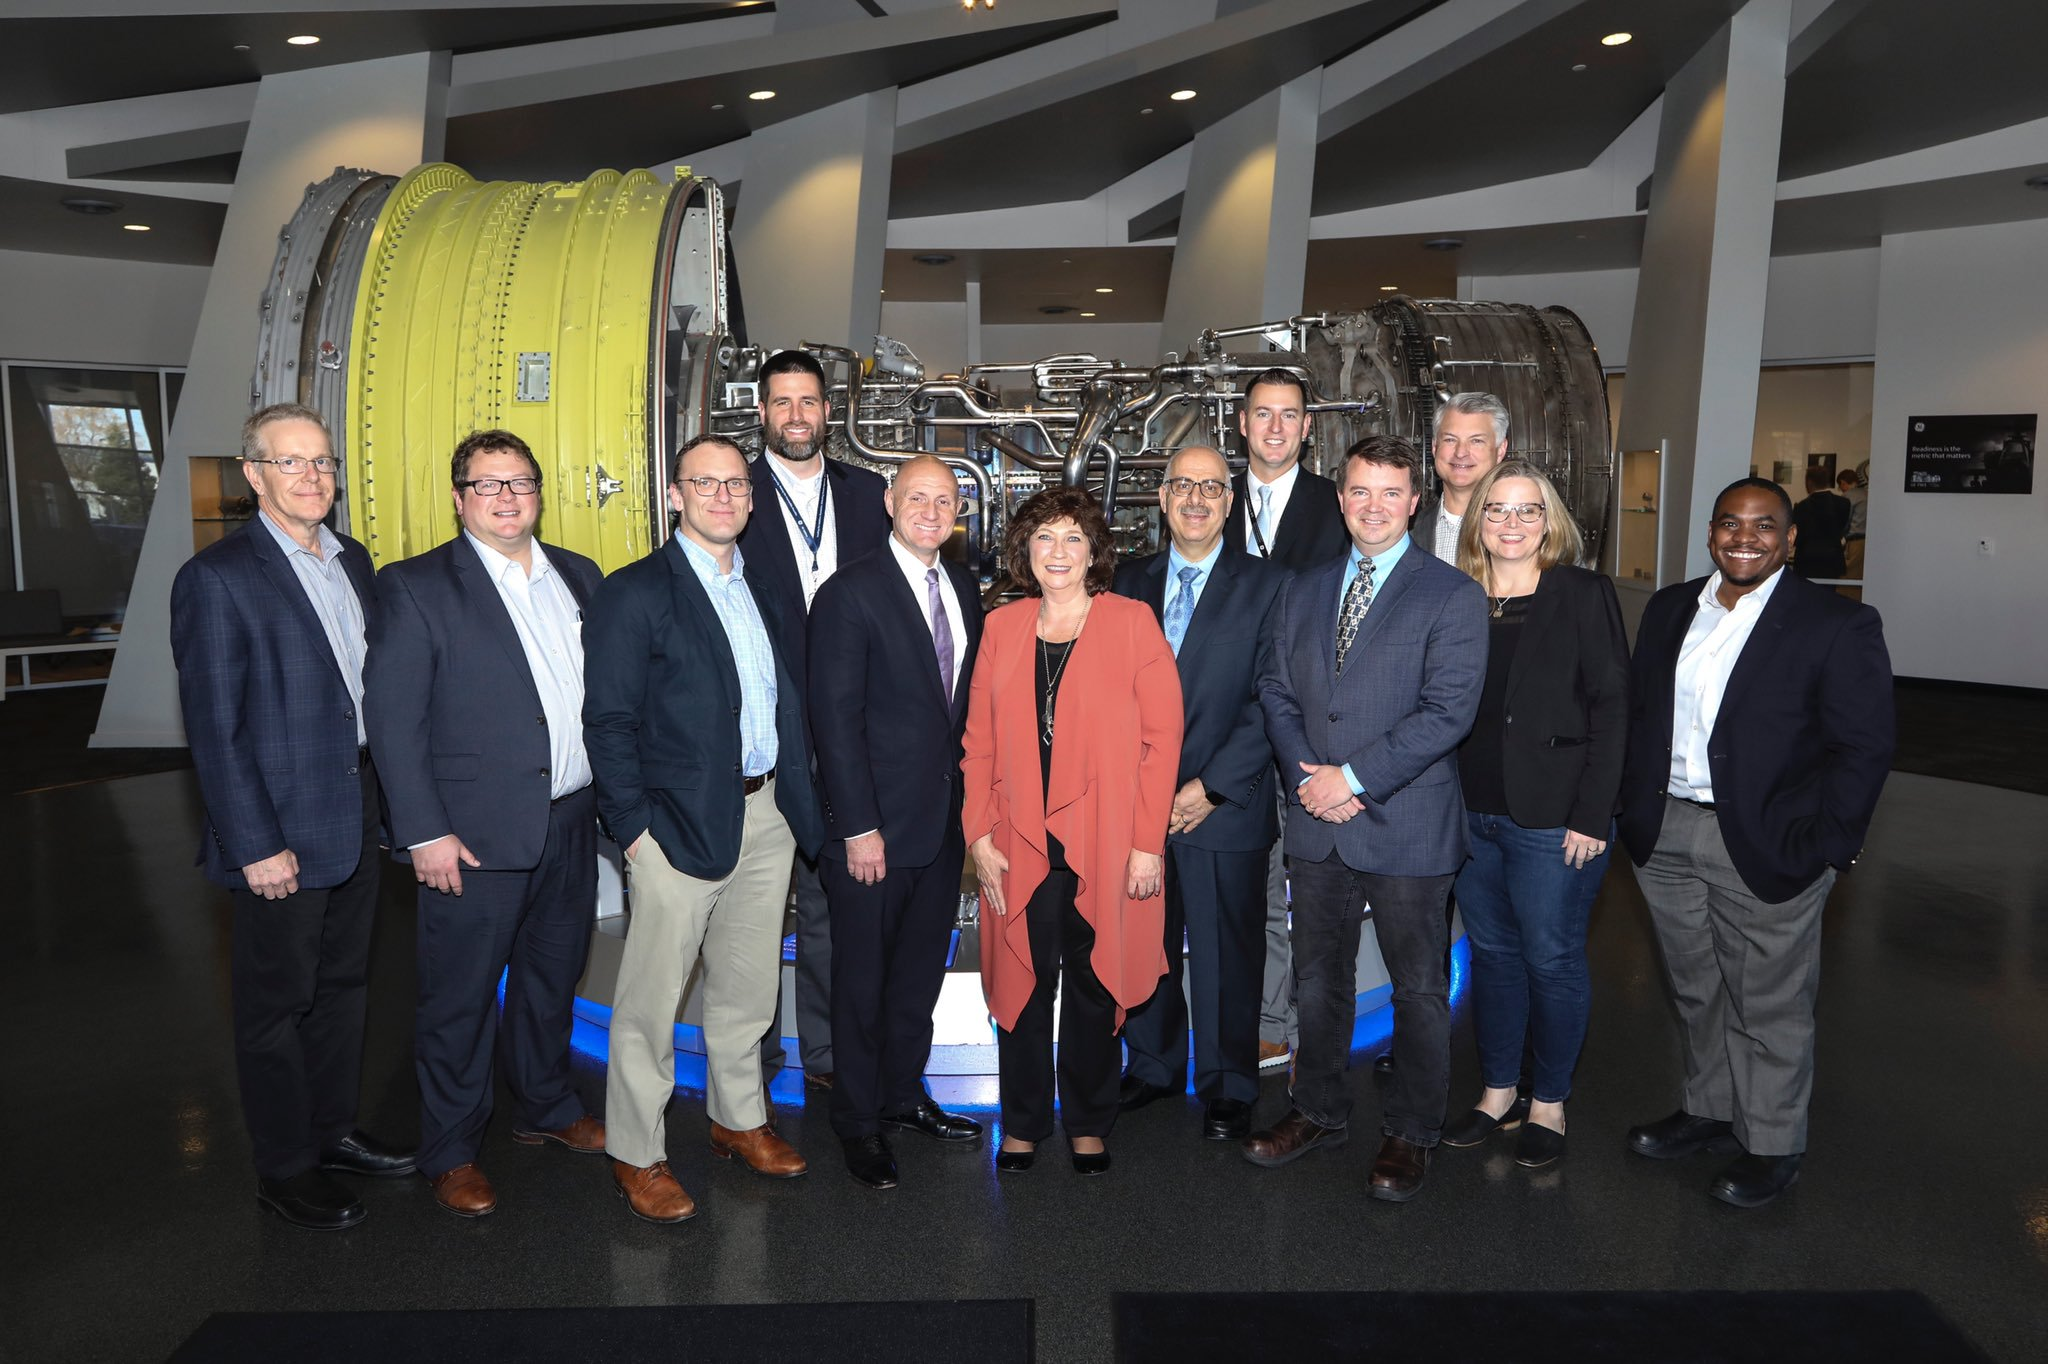 Members of GE, ORNL and DOE at the signing ceremony in GE Additive's Technology Center in Cincinnati. Photo via ORNL.